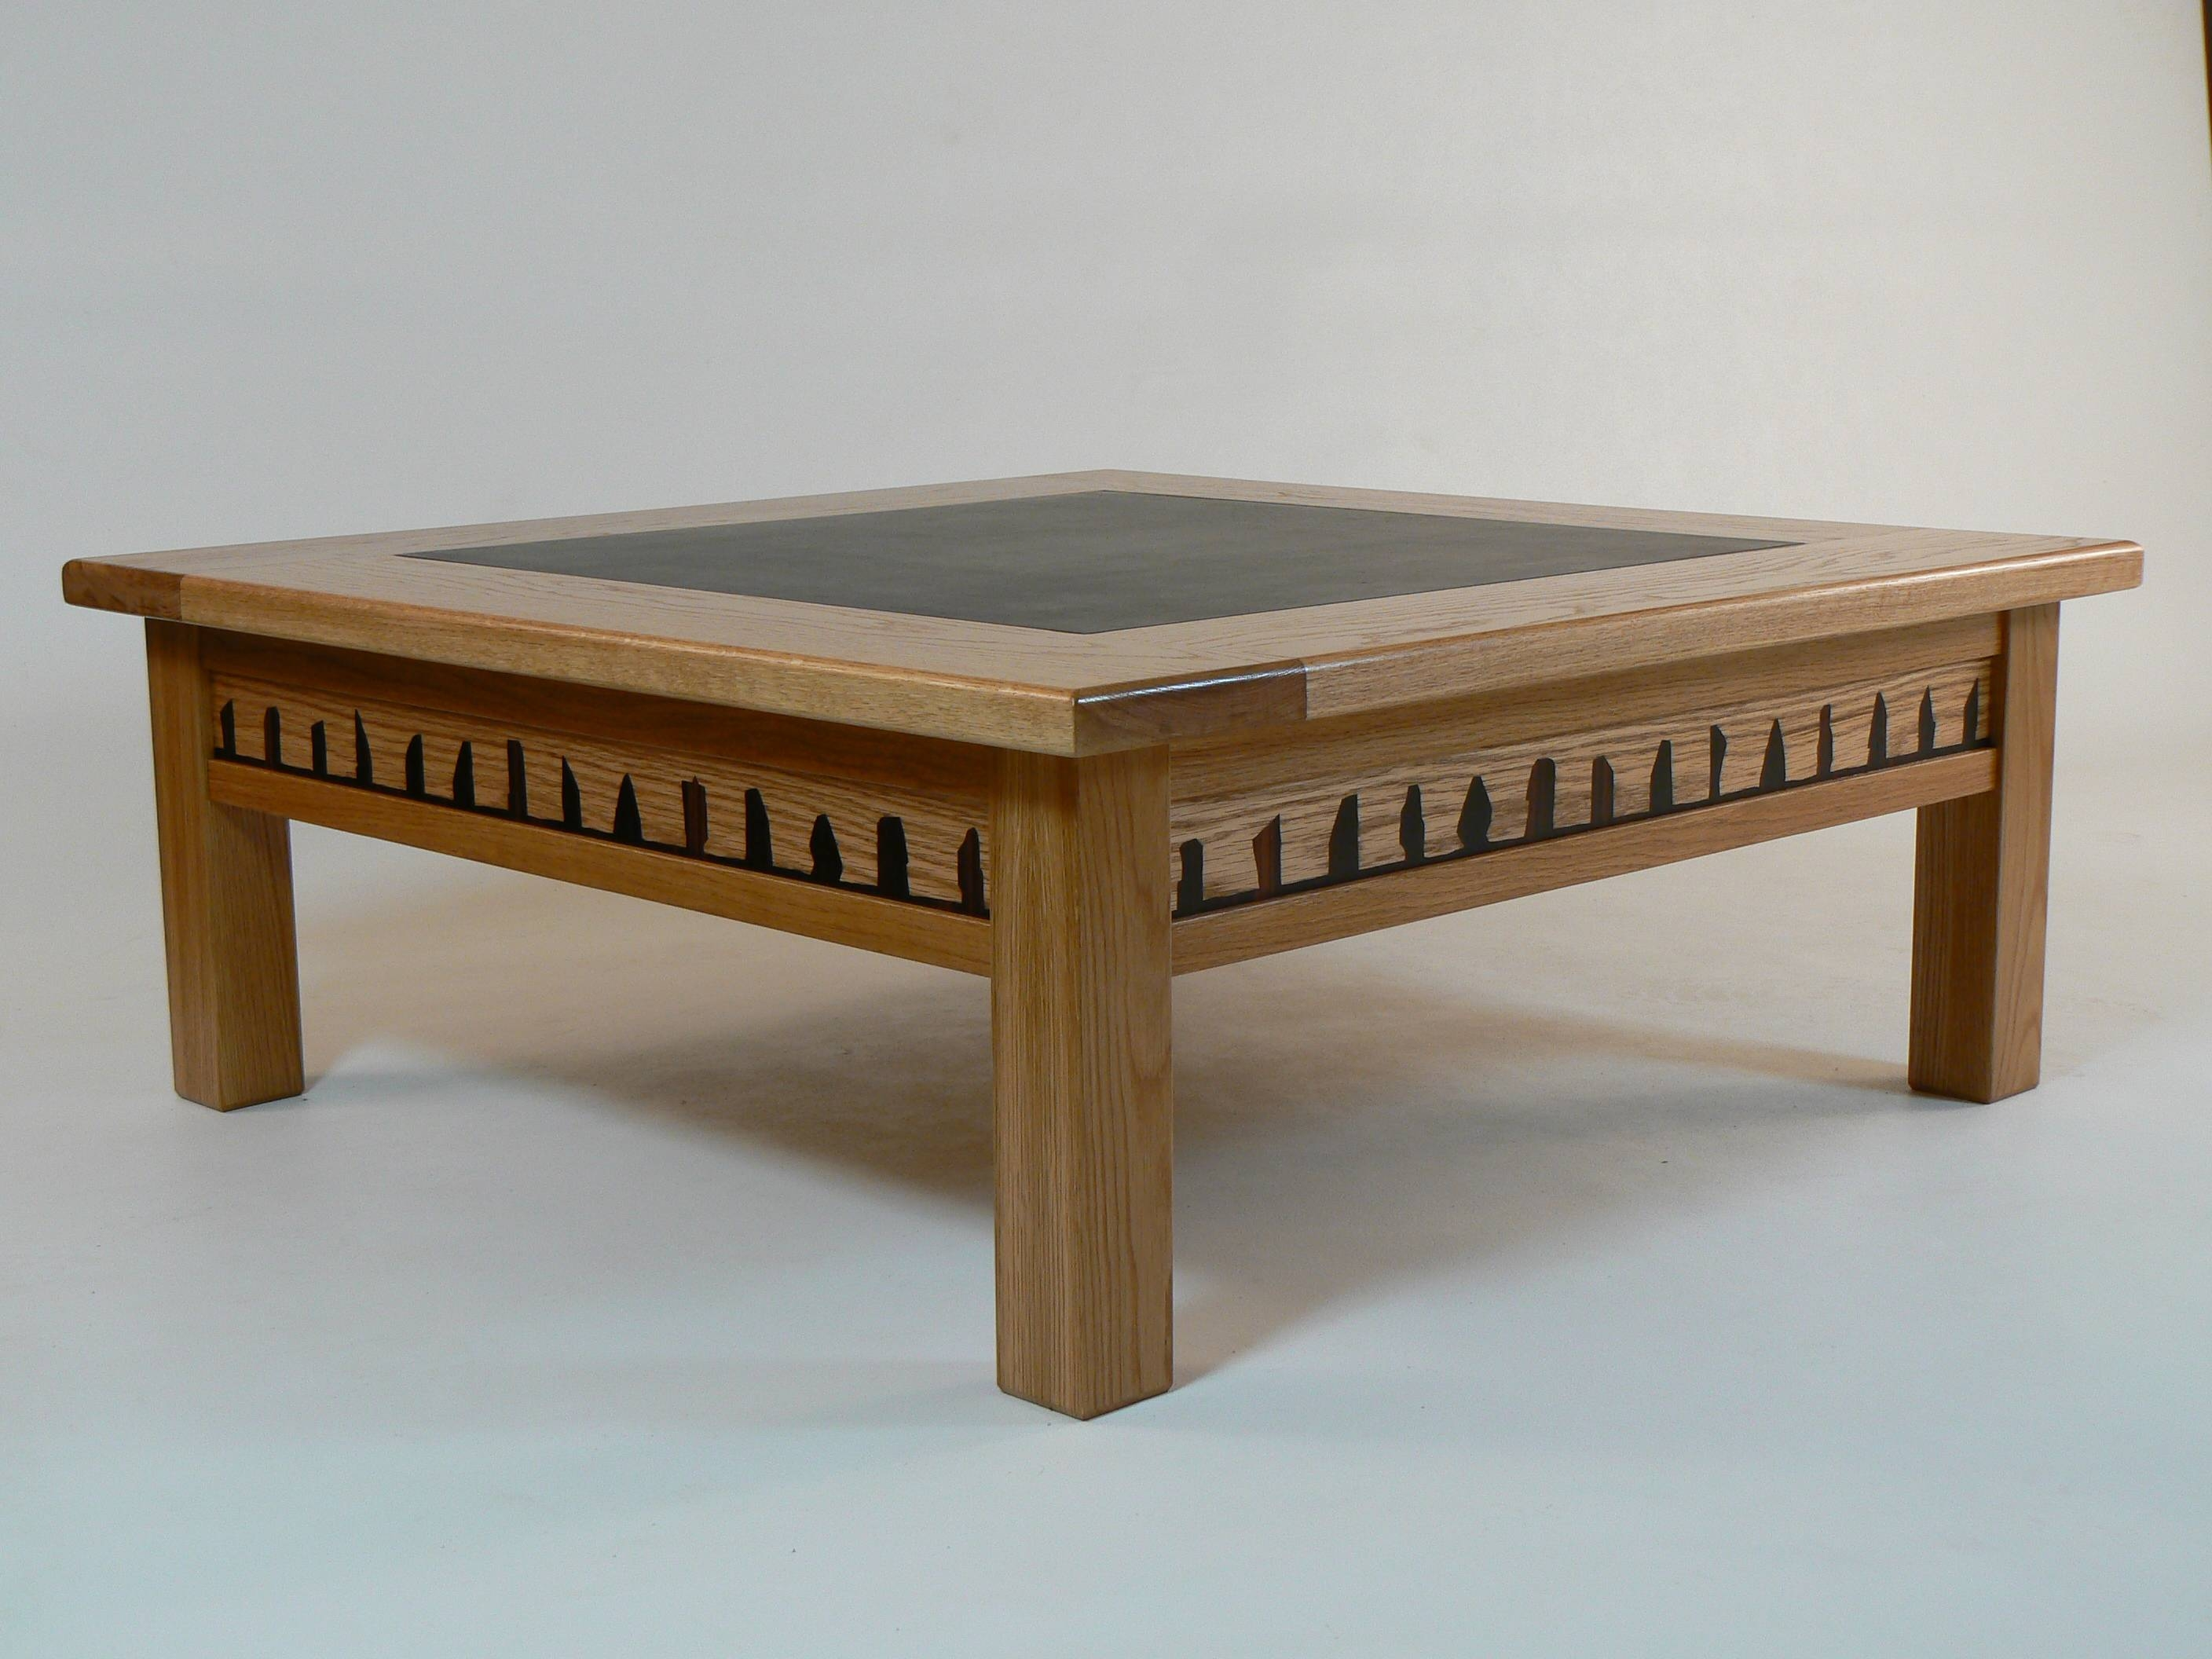 Square Oak Coffee Table With Glass Top | Coffee Tables Decoration intended for Oak Square Coffee Tables (Image 28 of 30)